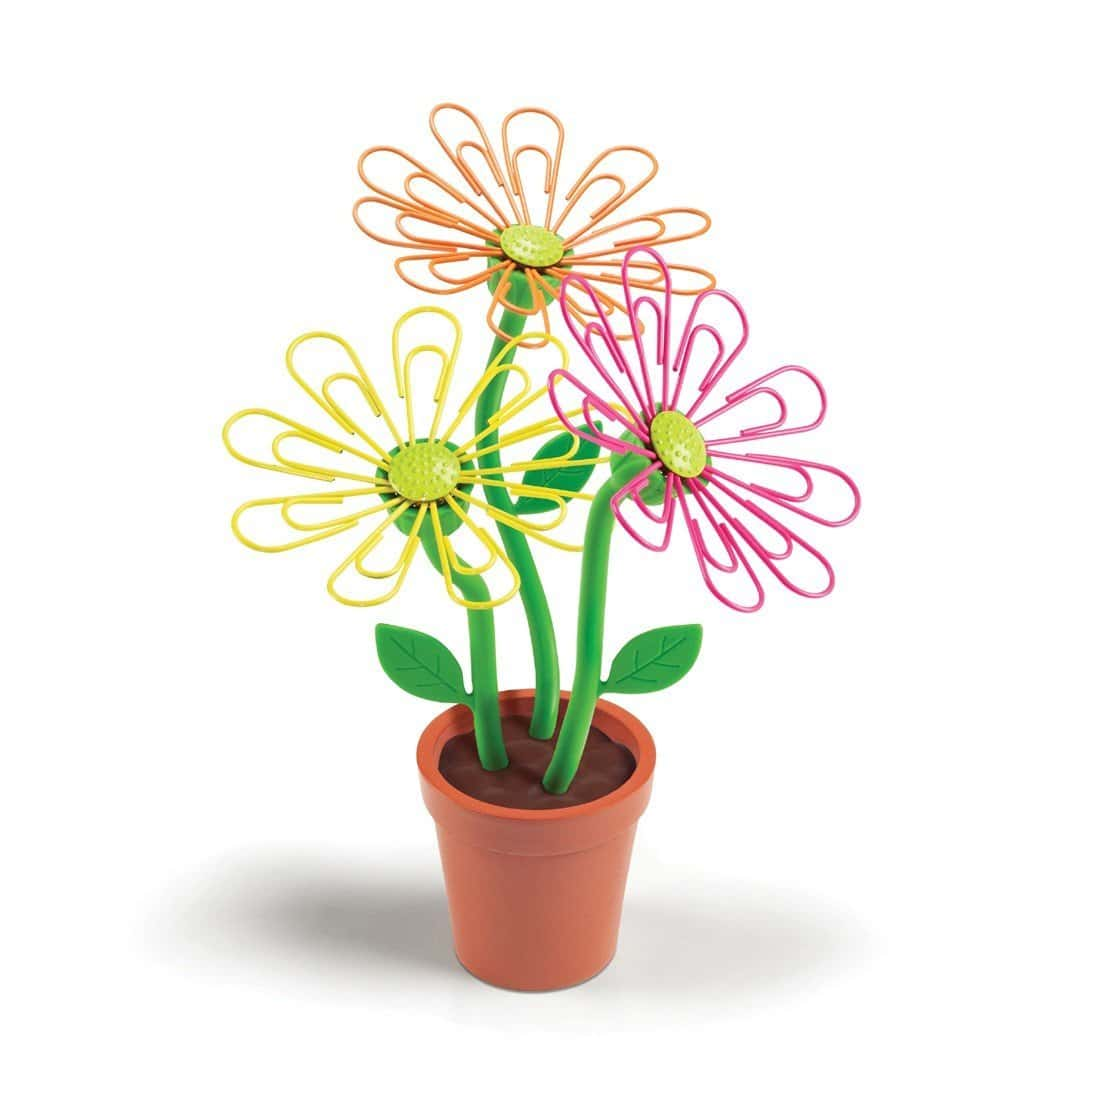 daisy paperclip holder